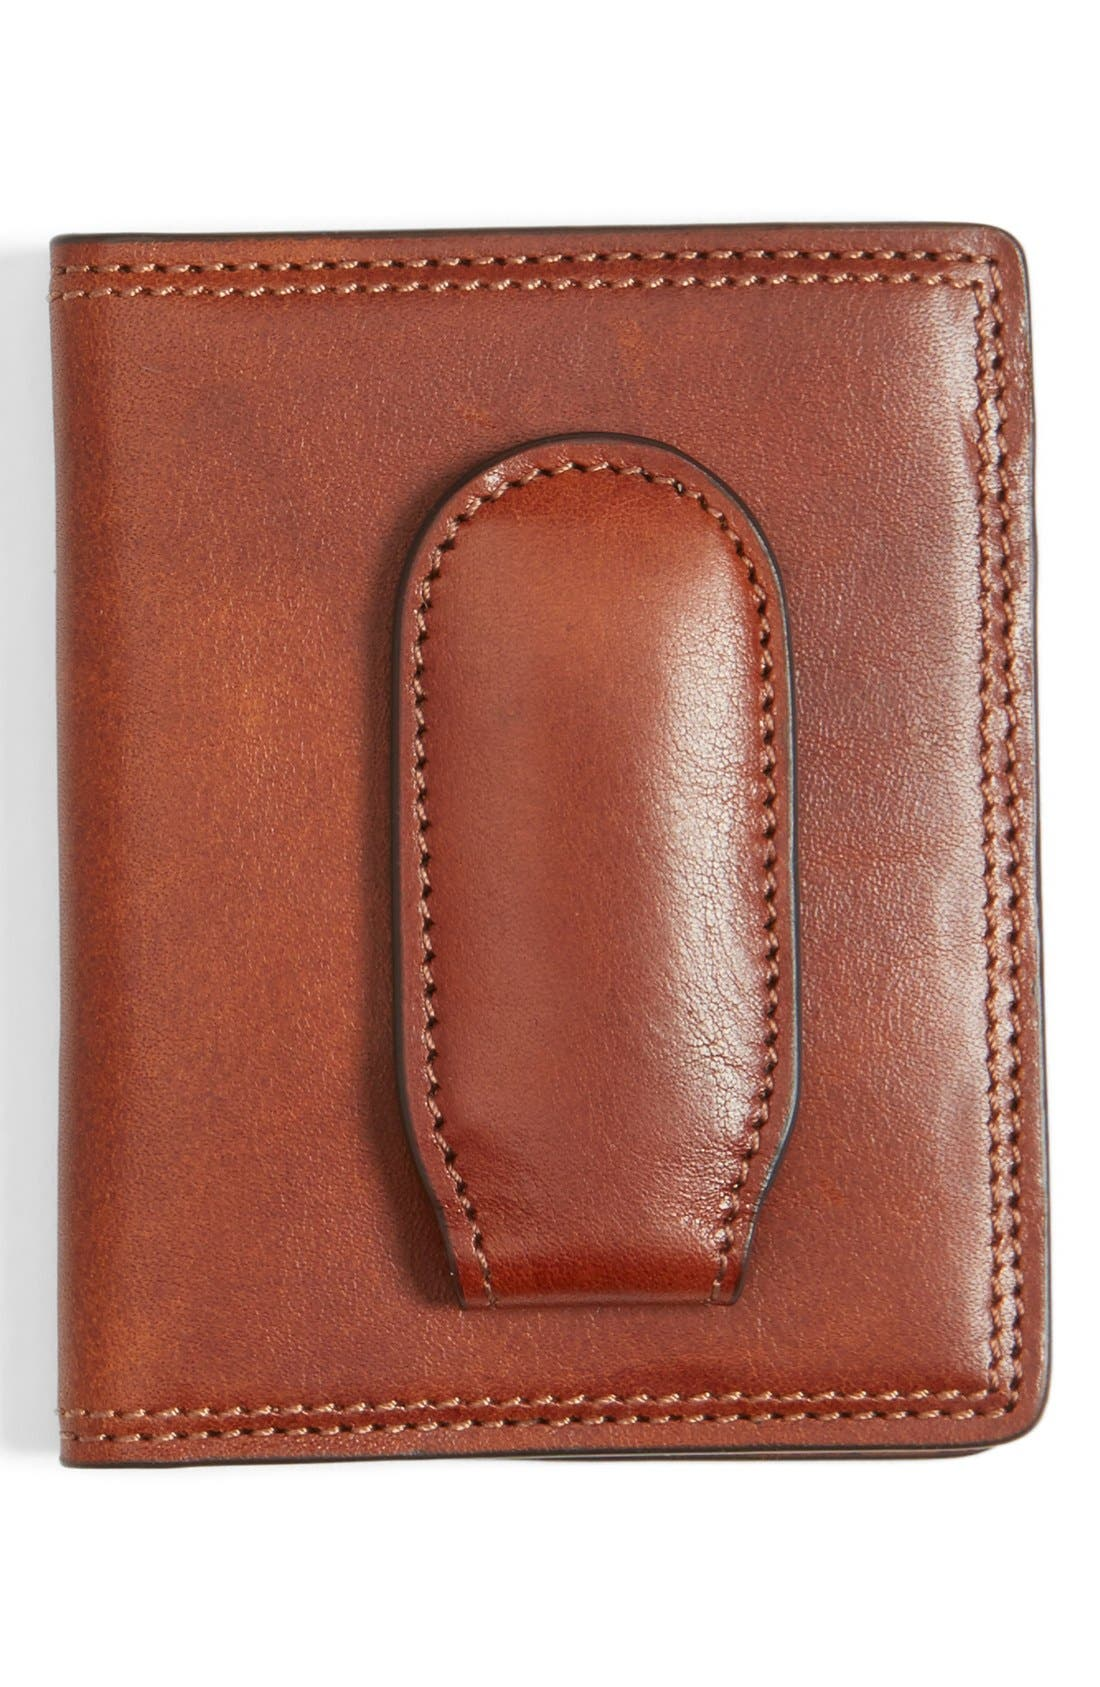 Main Image - Bosca Leather Front Pocket Money Clip Wallet